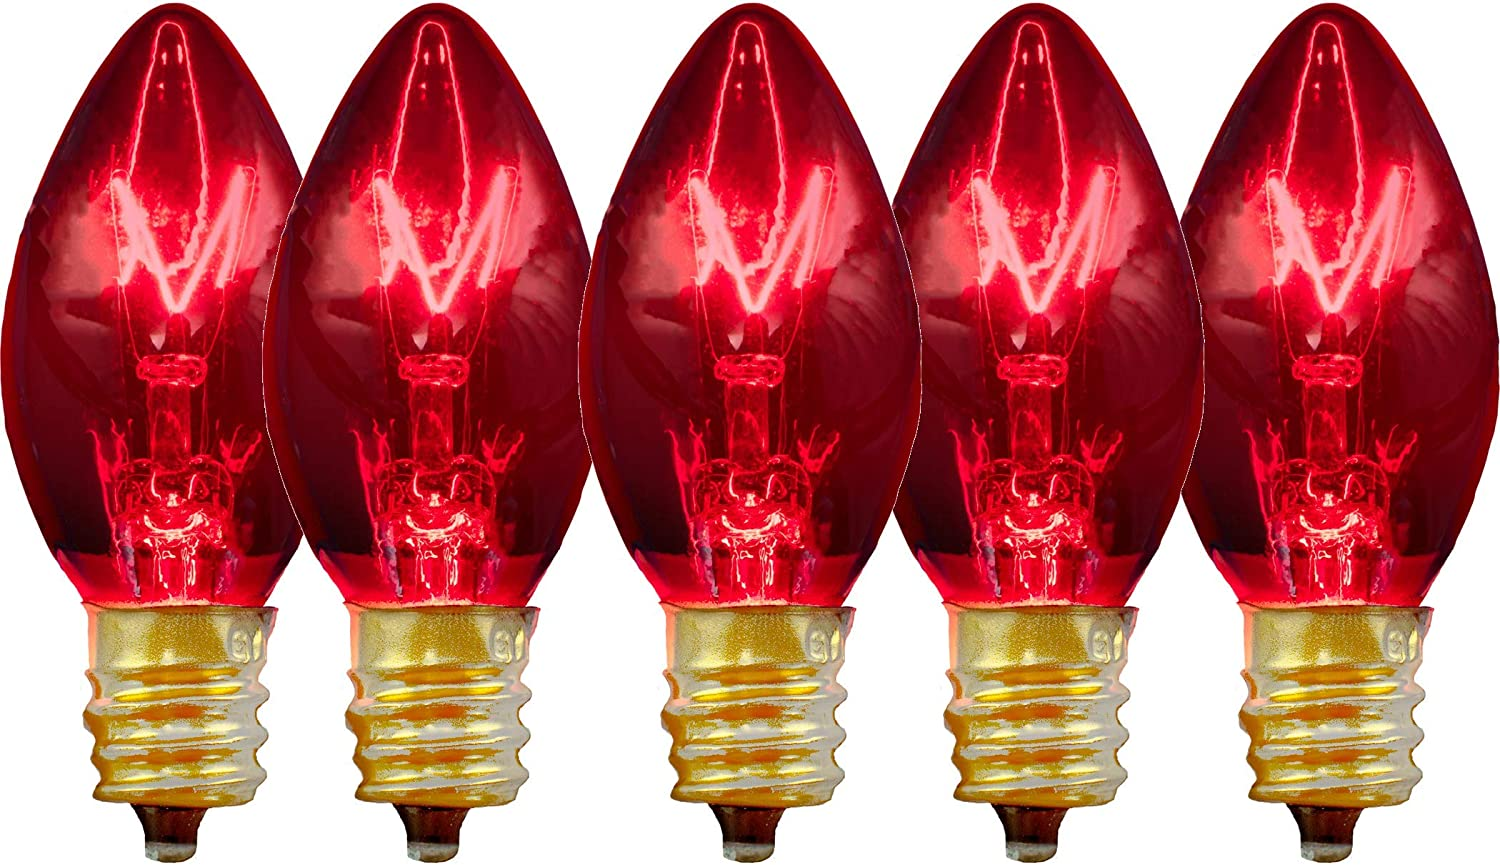 25 C9 Twinkle Red Triple Dipped Transparent Indoor//Outdoor Christmas Bulbs